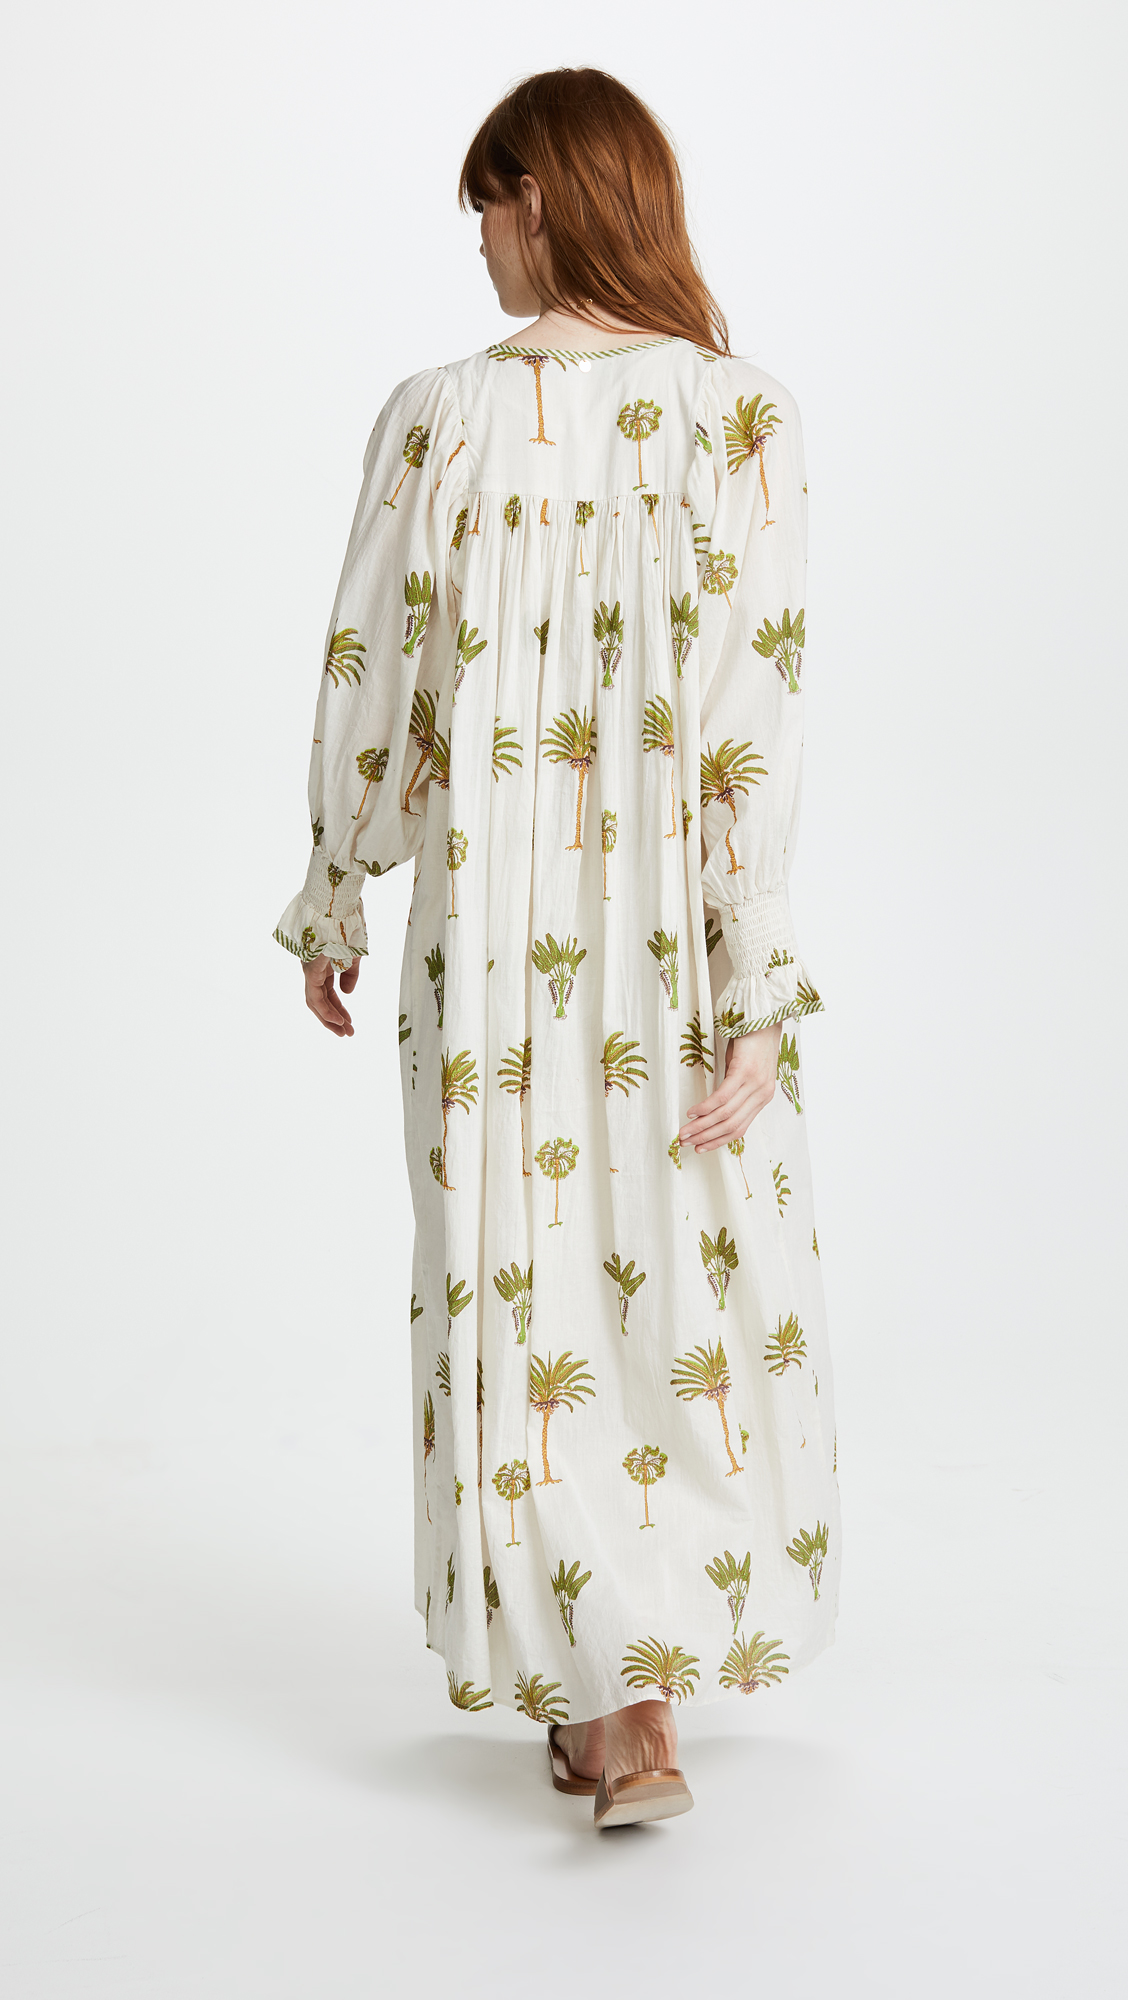 c95b0c6ad0 Antik Batik Palladio Maxi Dress